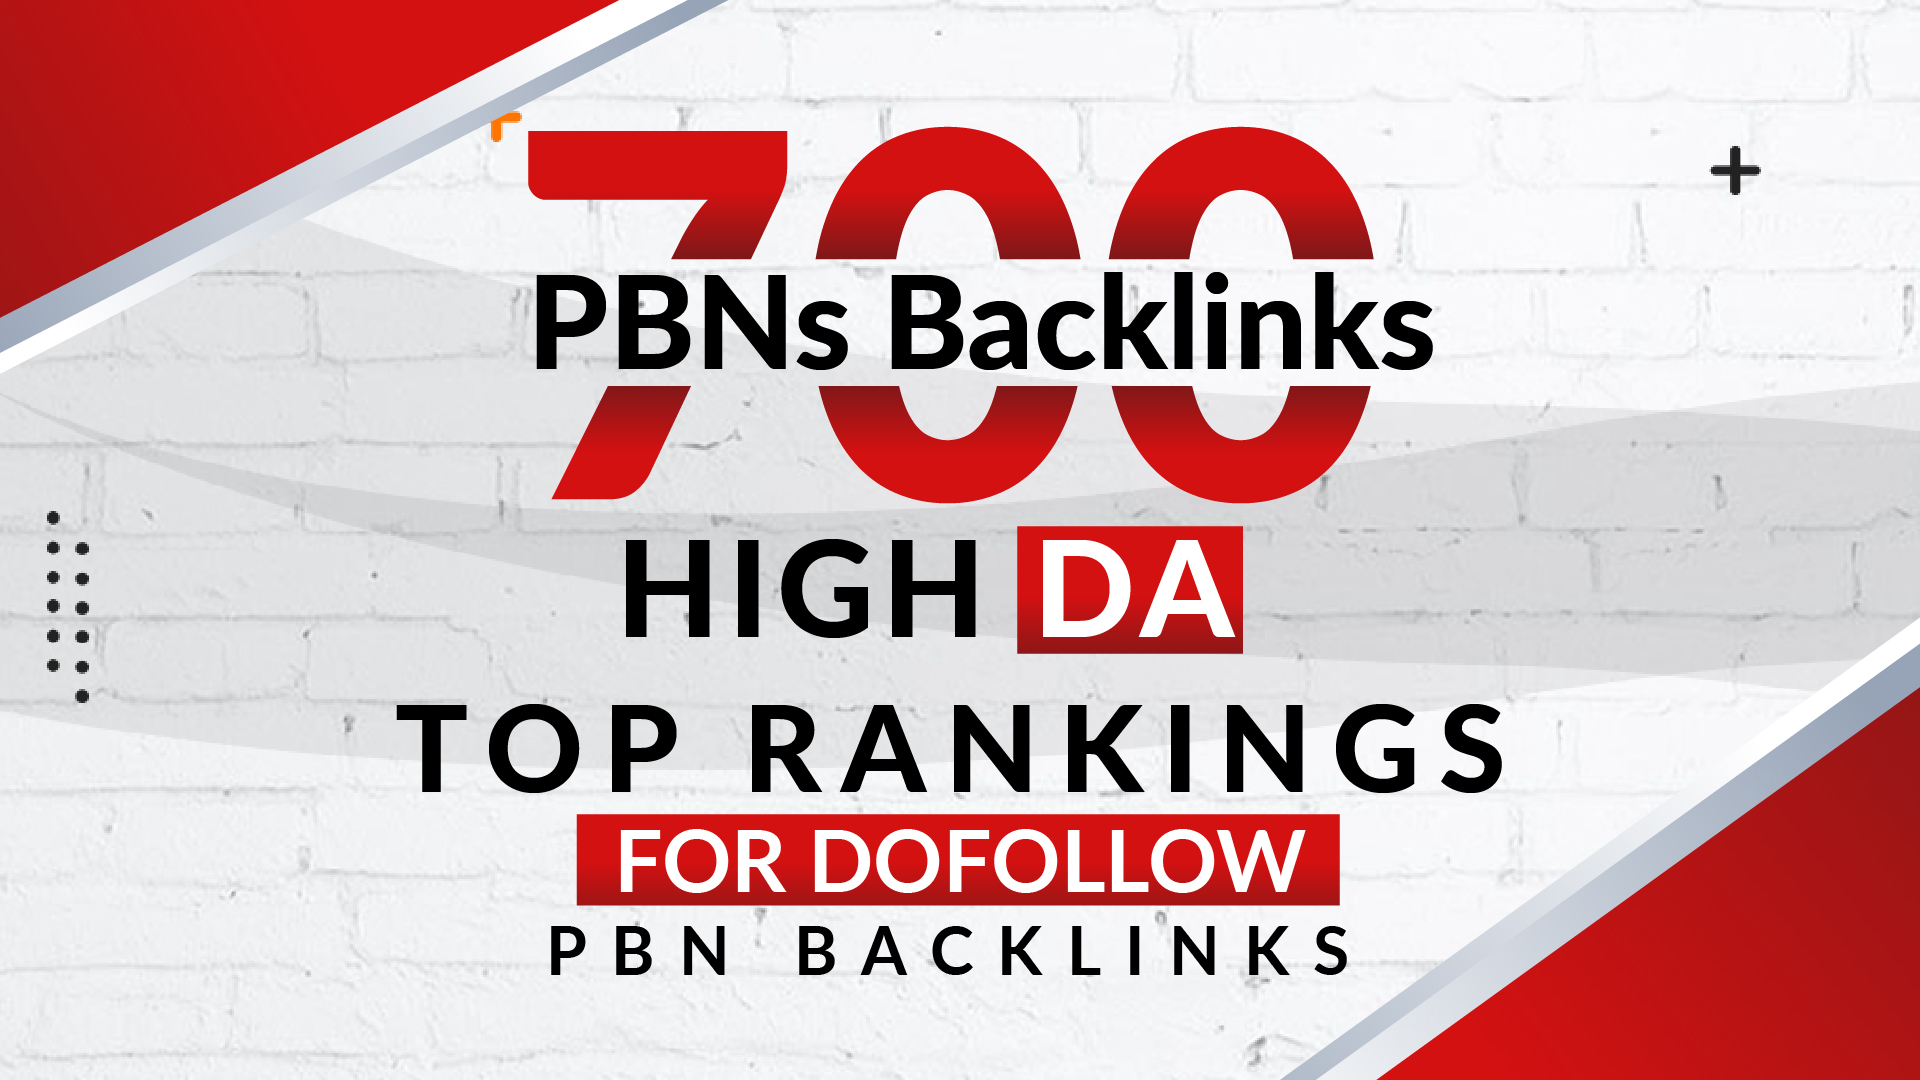 700 PBNs Backlinks High DA Top Rankings For Dofollow PBN Backlinks